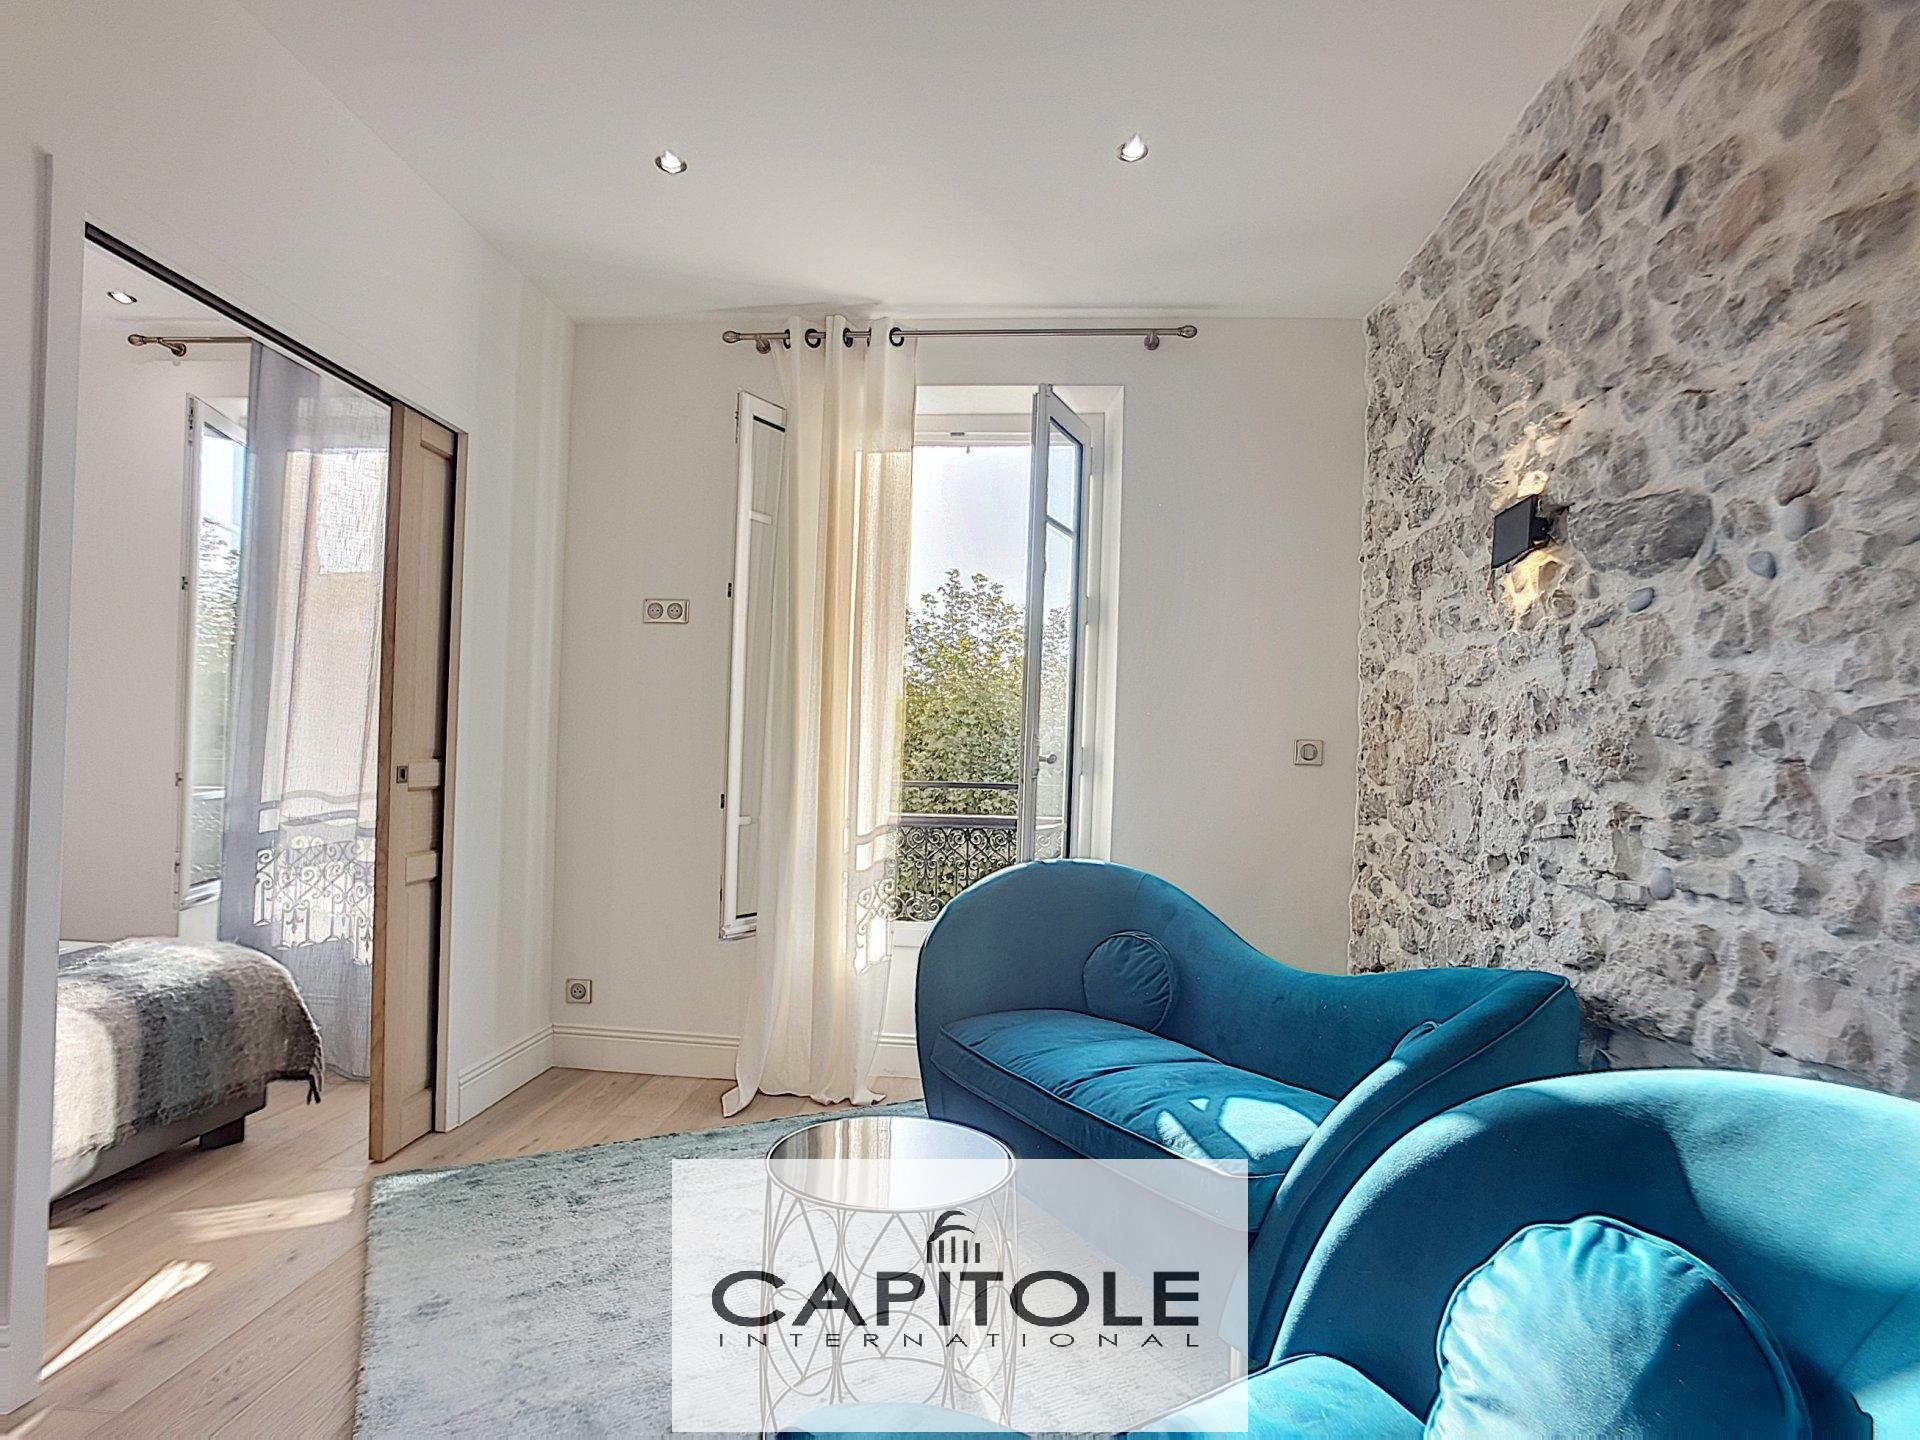 For sale, heart of Old Antibes SOLE AGENT PROPERTY, superb sunny 2 bedroom apartment, open views, full of character,